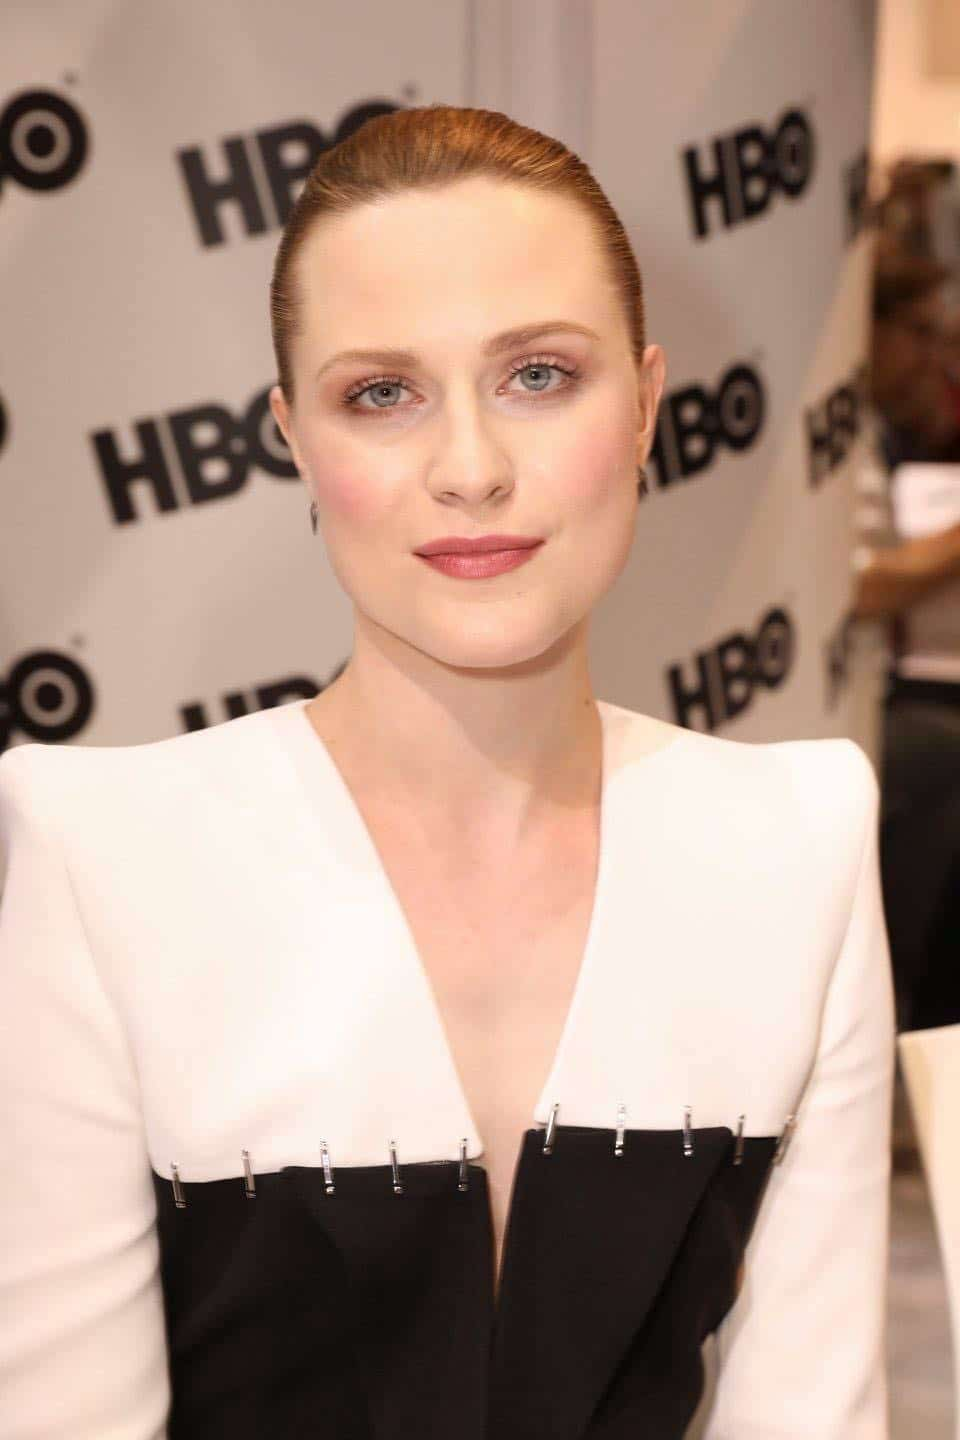 WESTWORLD star Evan Rachel Wood makes an appearance at the Warner Bros. booth at Comic-Con 2017 on Saturday, July 22. #WBSDCC (© 2017 WBEI. All Rights Reserved)